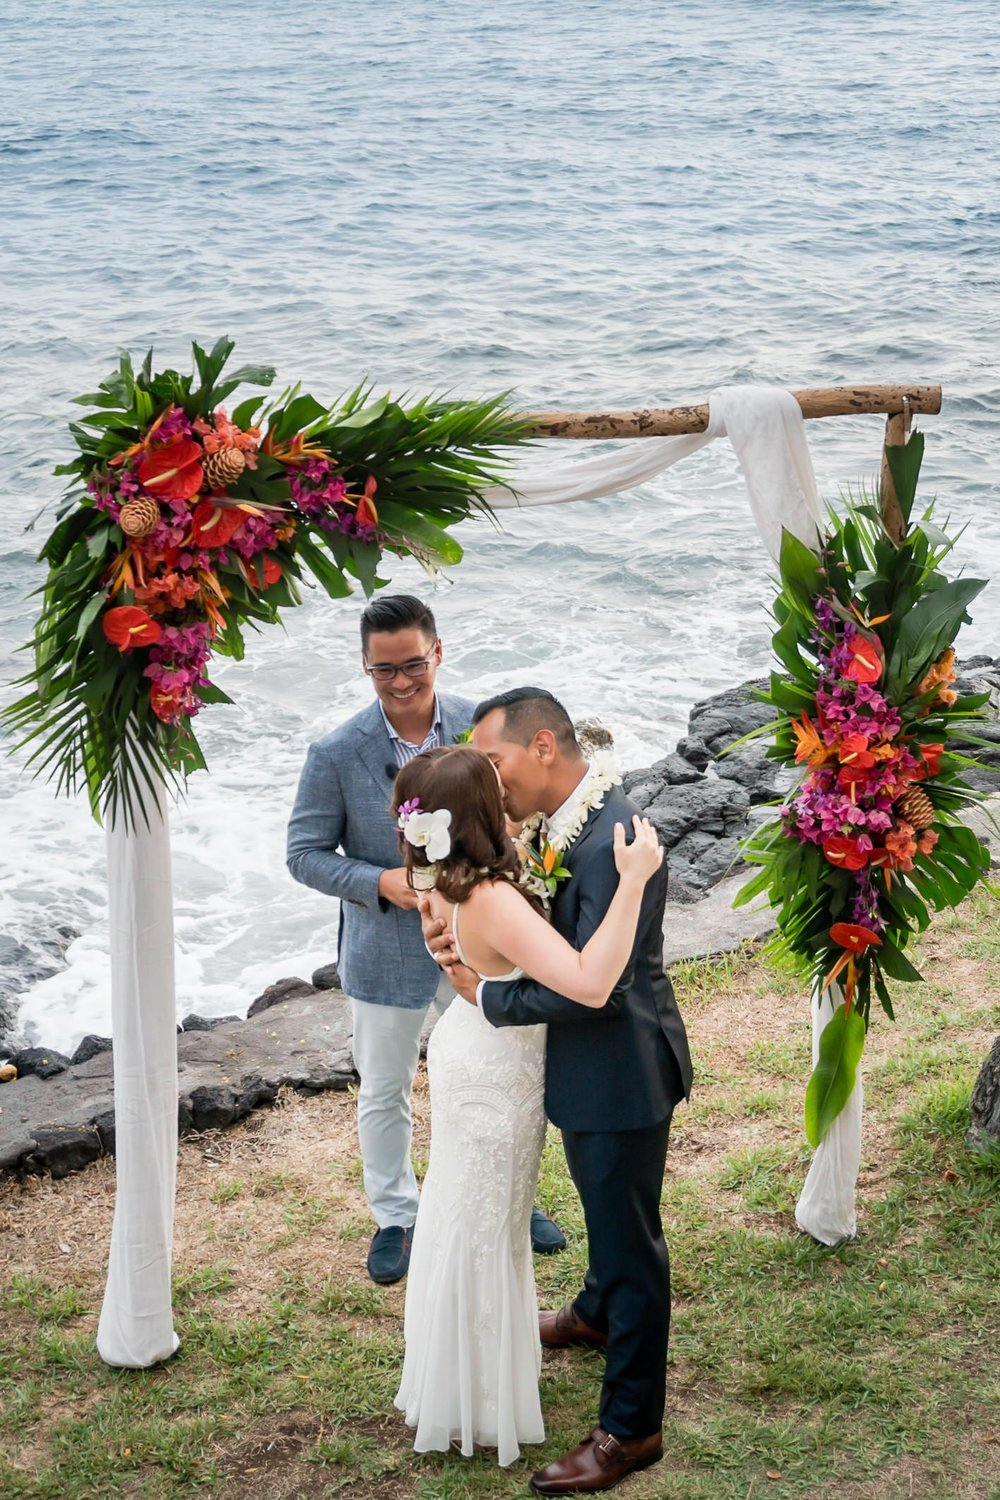 Big-Island-Hawaii-Jade-Keyes-Derrick-Alig-Daylight-Mind-Kailua-Kona-Hawaii-Wedding15.jpg